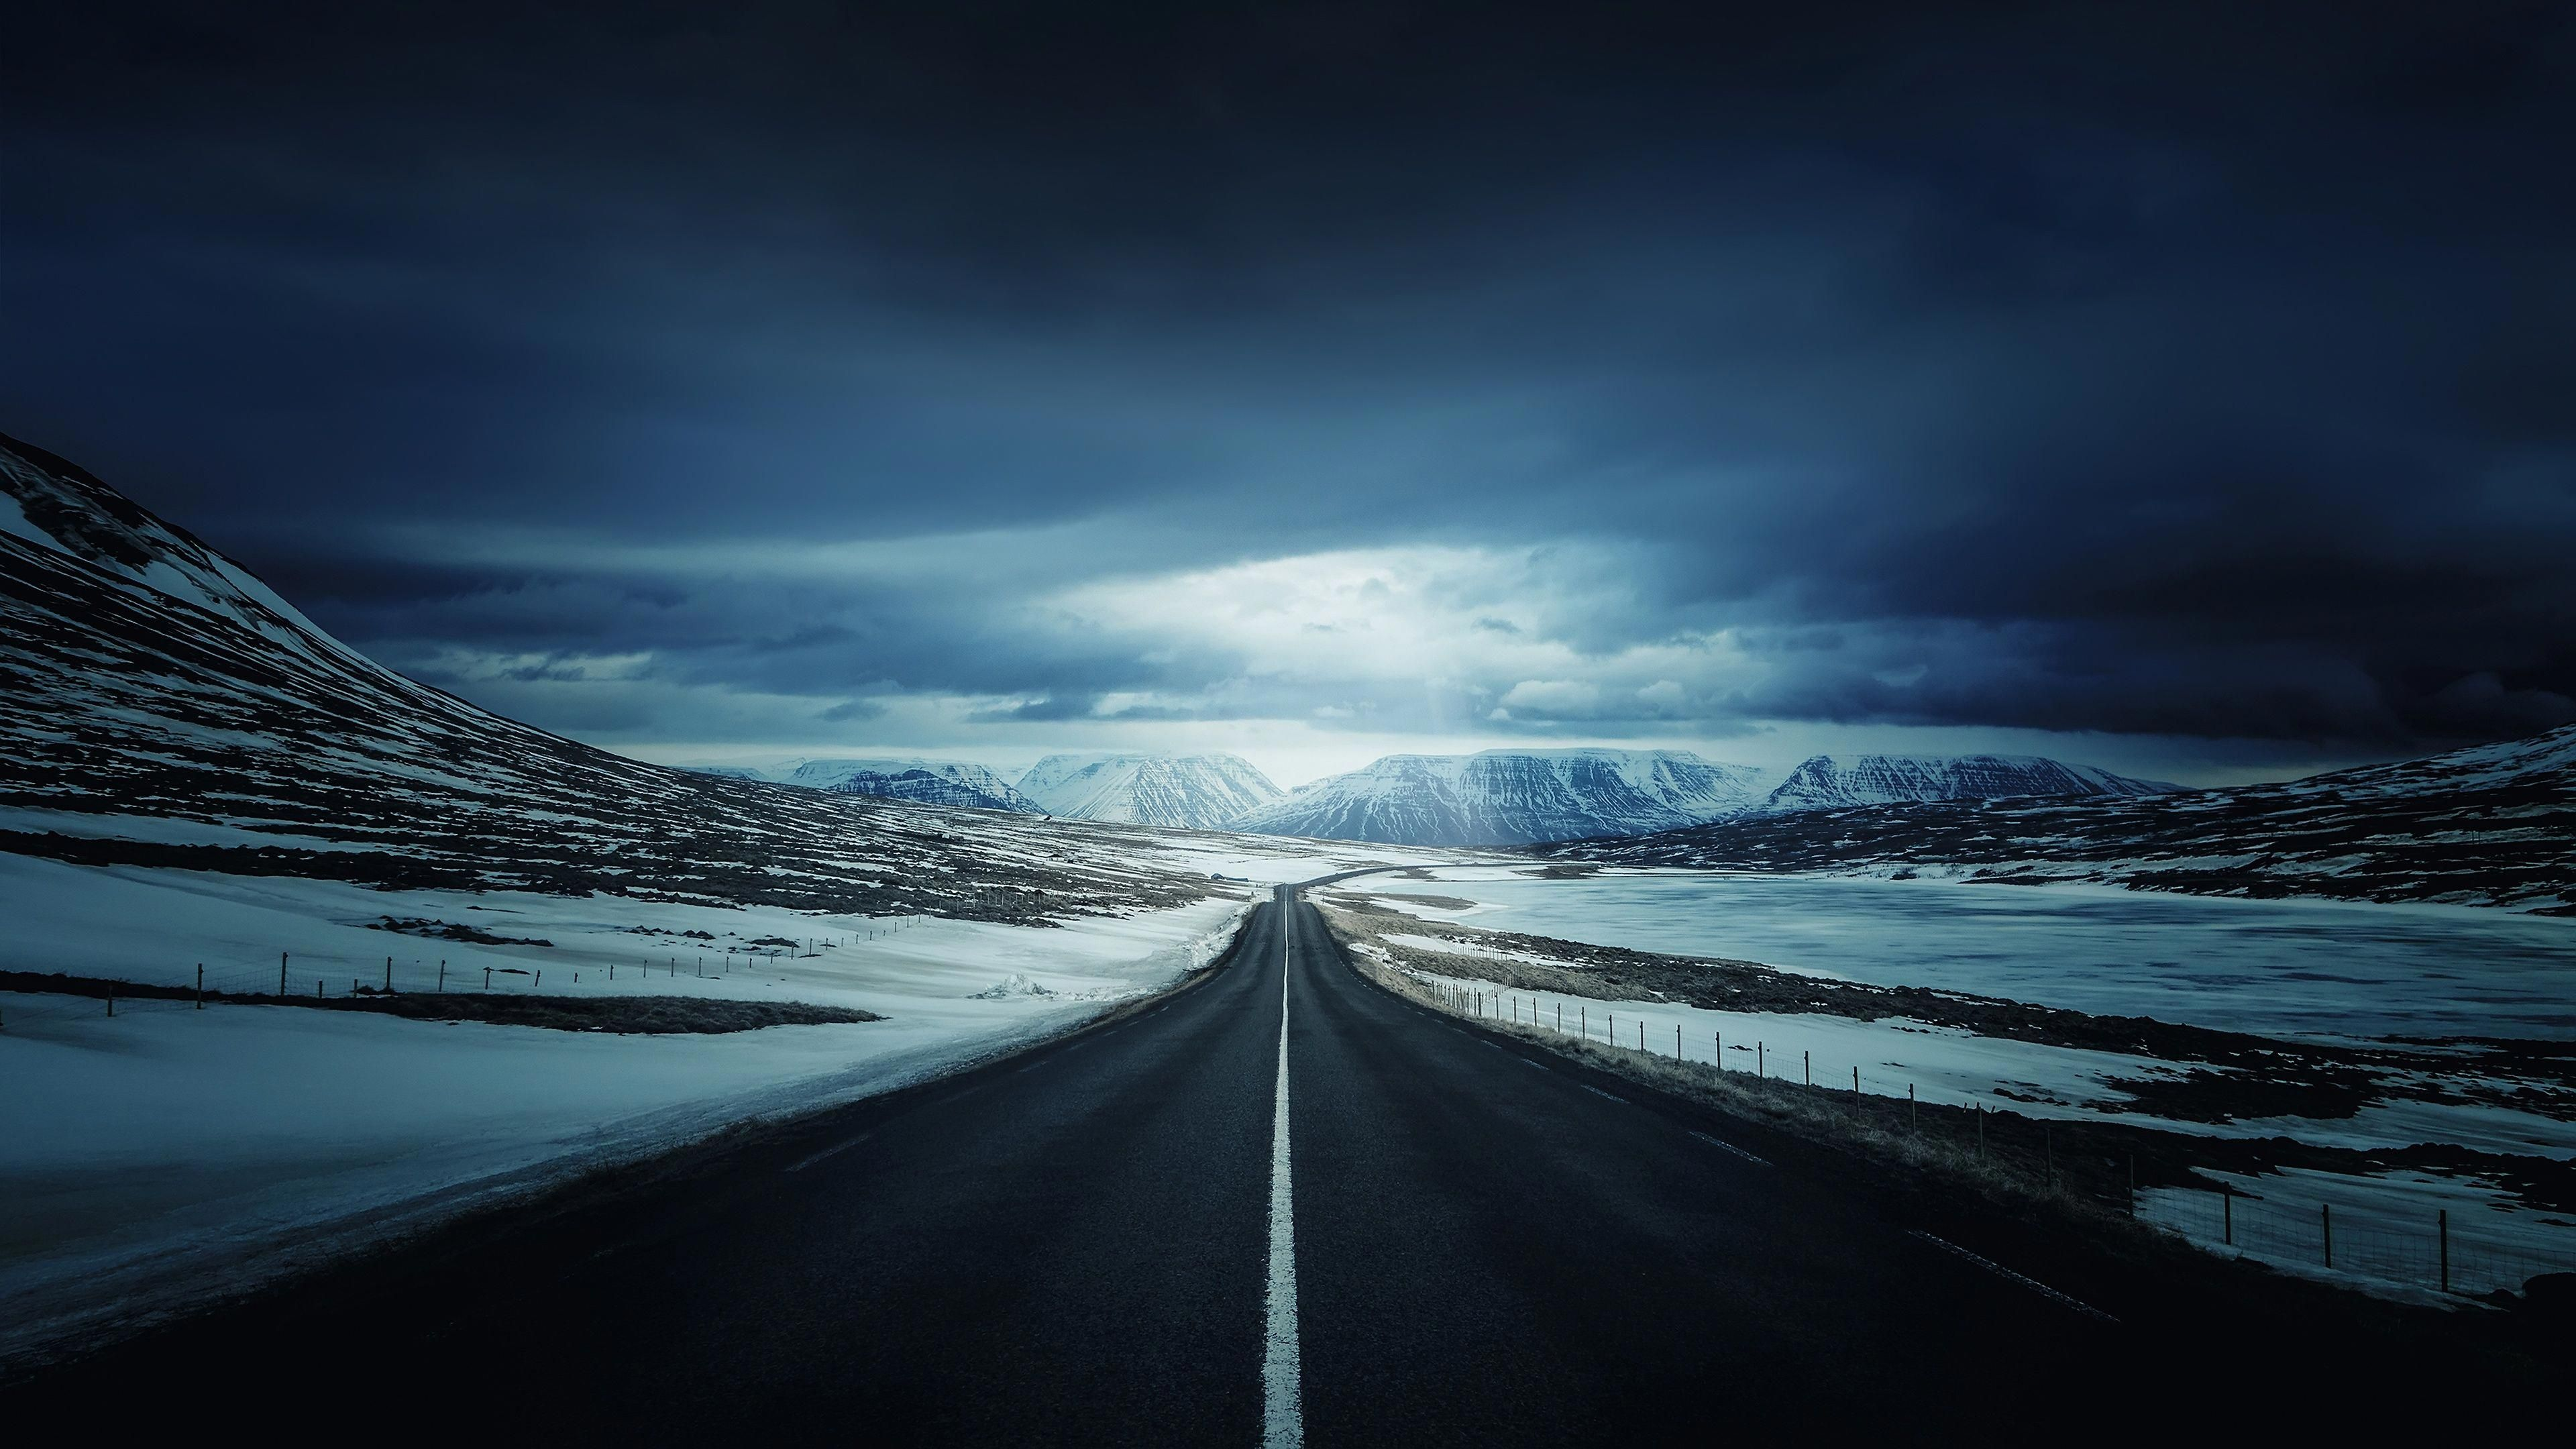 Hd Wallpaper Download Iceland S Ring Road Wallpapers Hd